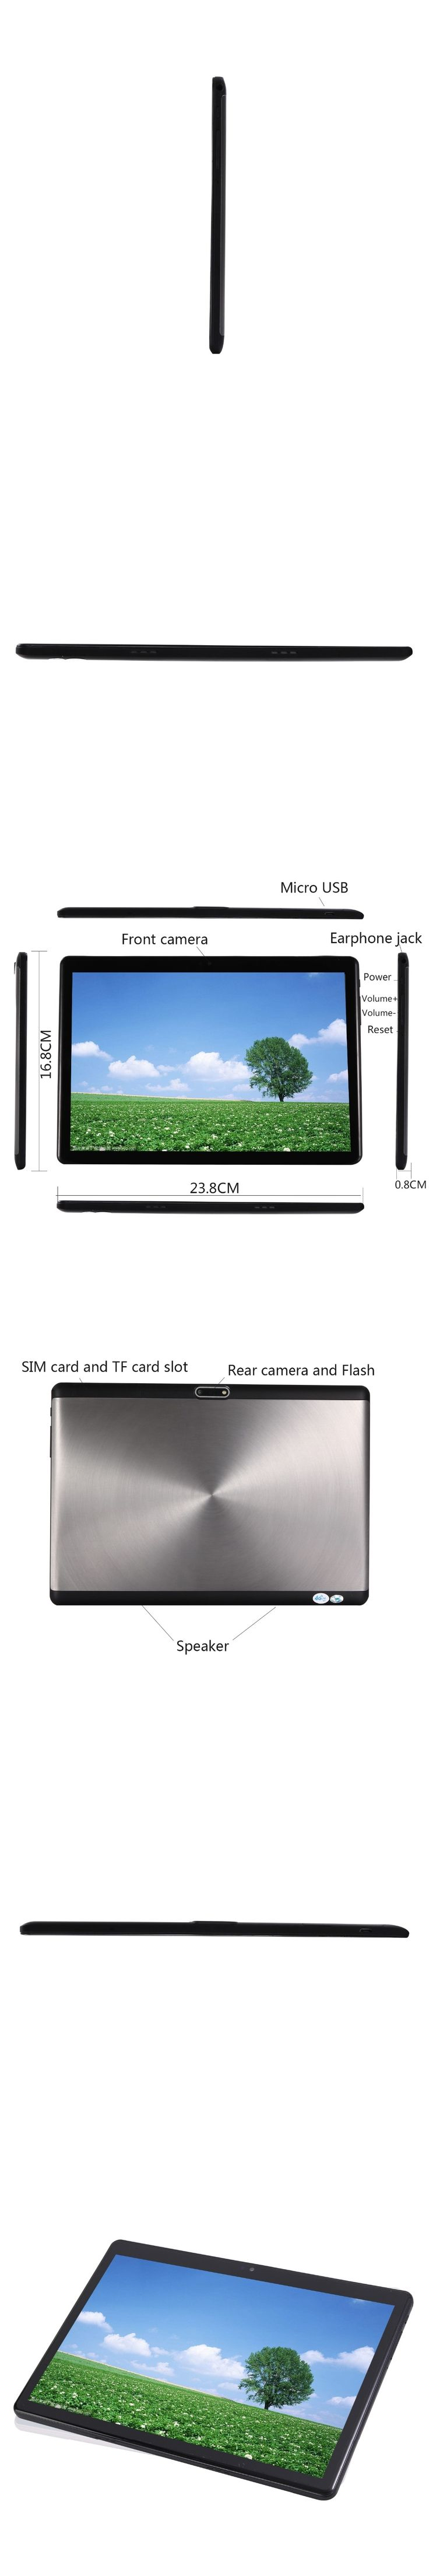 BMXC Newest 10.1 inch  Android 7.0 10 Core Tablet 4G LTE Dual SIM Phone Call 64GB ROM 4GB RAM WIFI bluetooth GPS Tablet PC 10